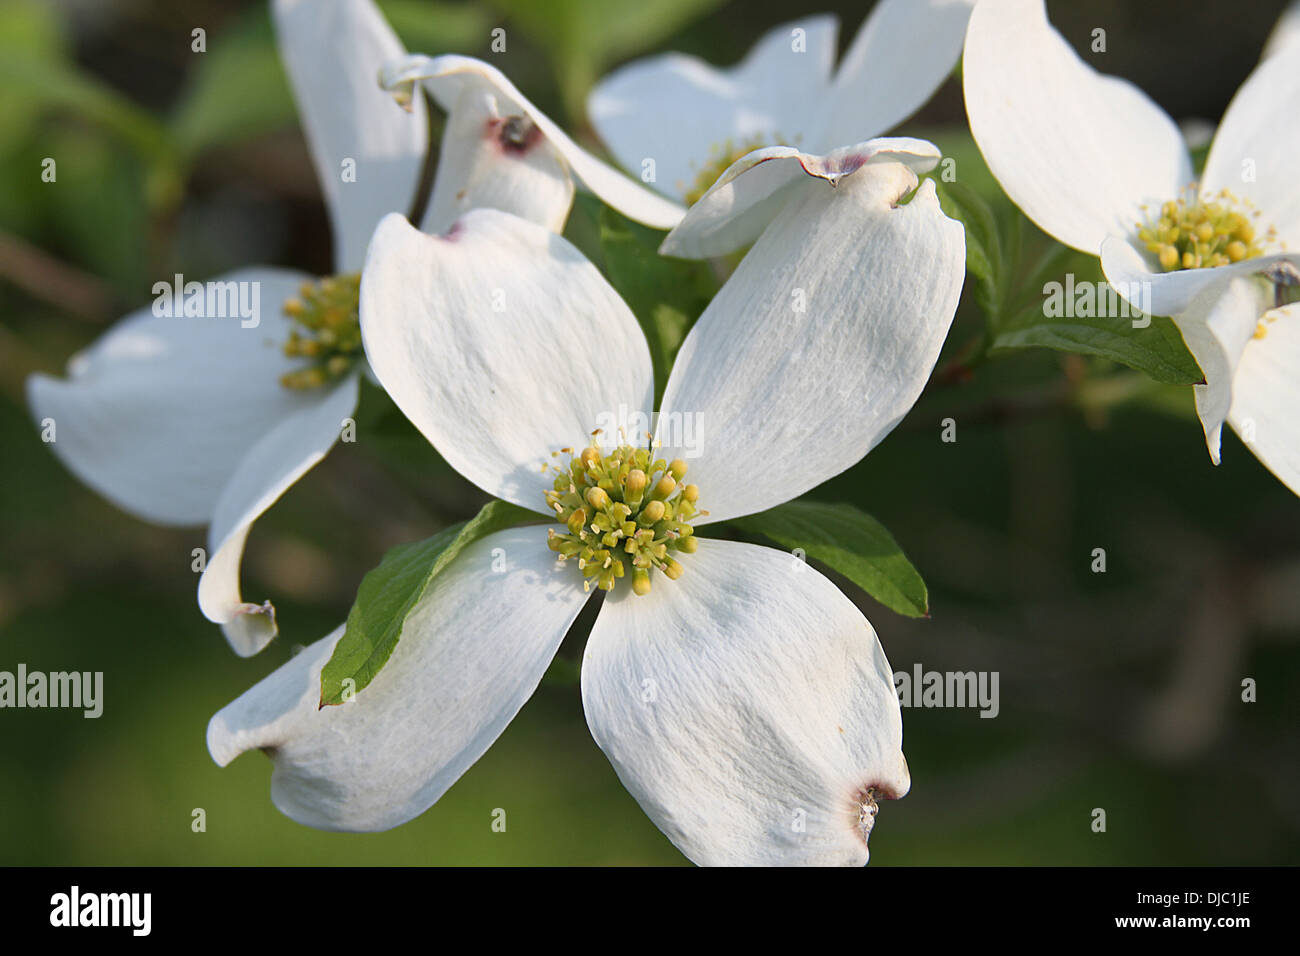 Close Up Of A Beautiful White Dogwood Flower With Yellow Pistols In